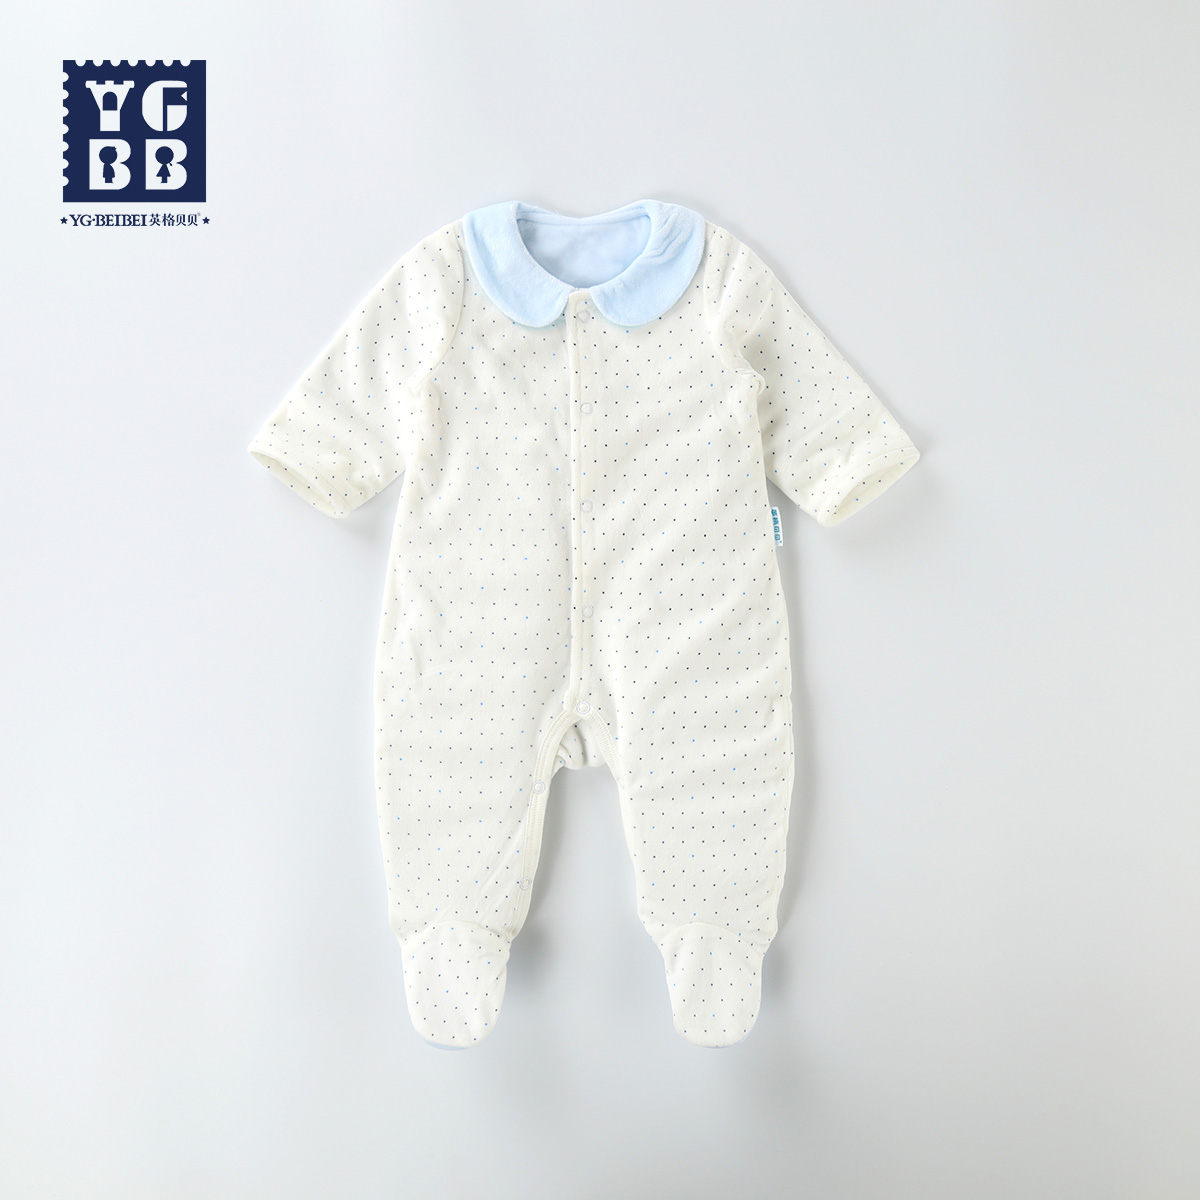 Ying ge beibei 2016 new baby spring and autumn thin section double leotard romper newborn baby clothes climbing clothes